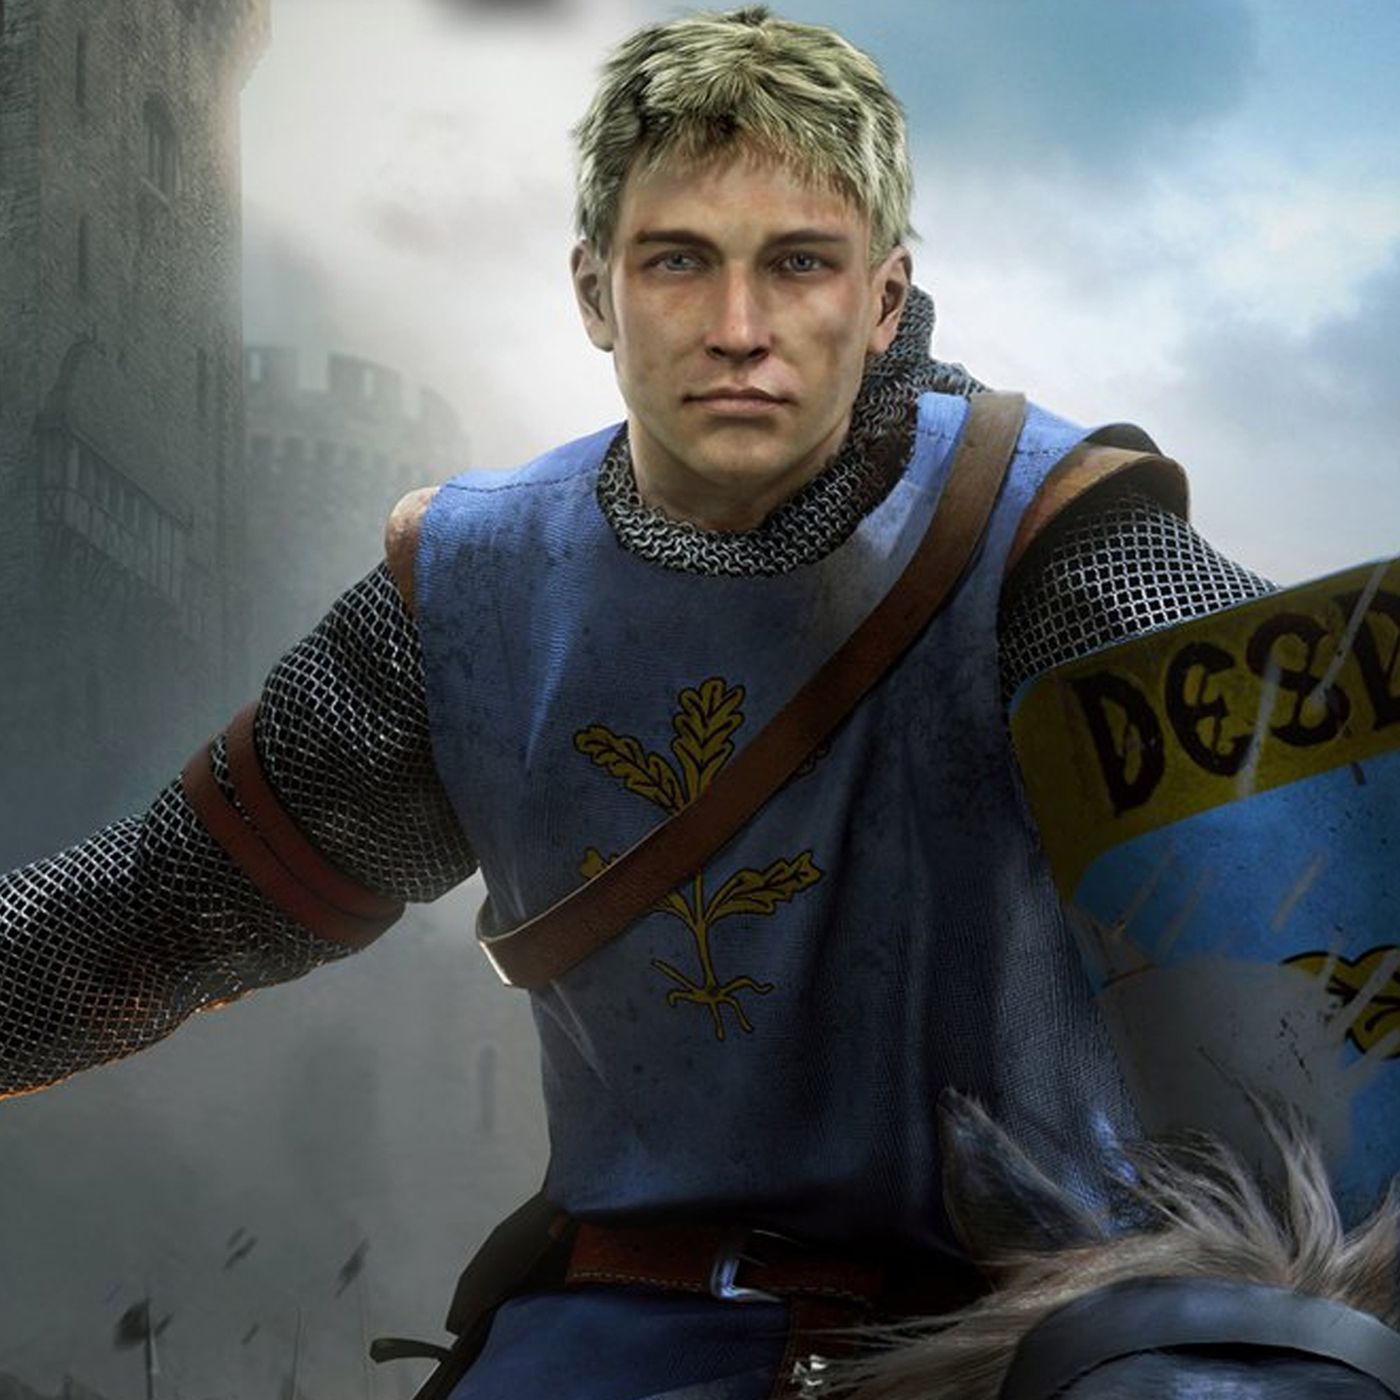 HBO has talked to the Crusader Kings 2 team, but not for the reason